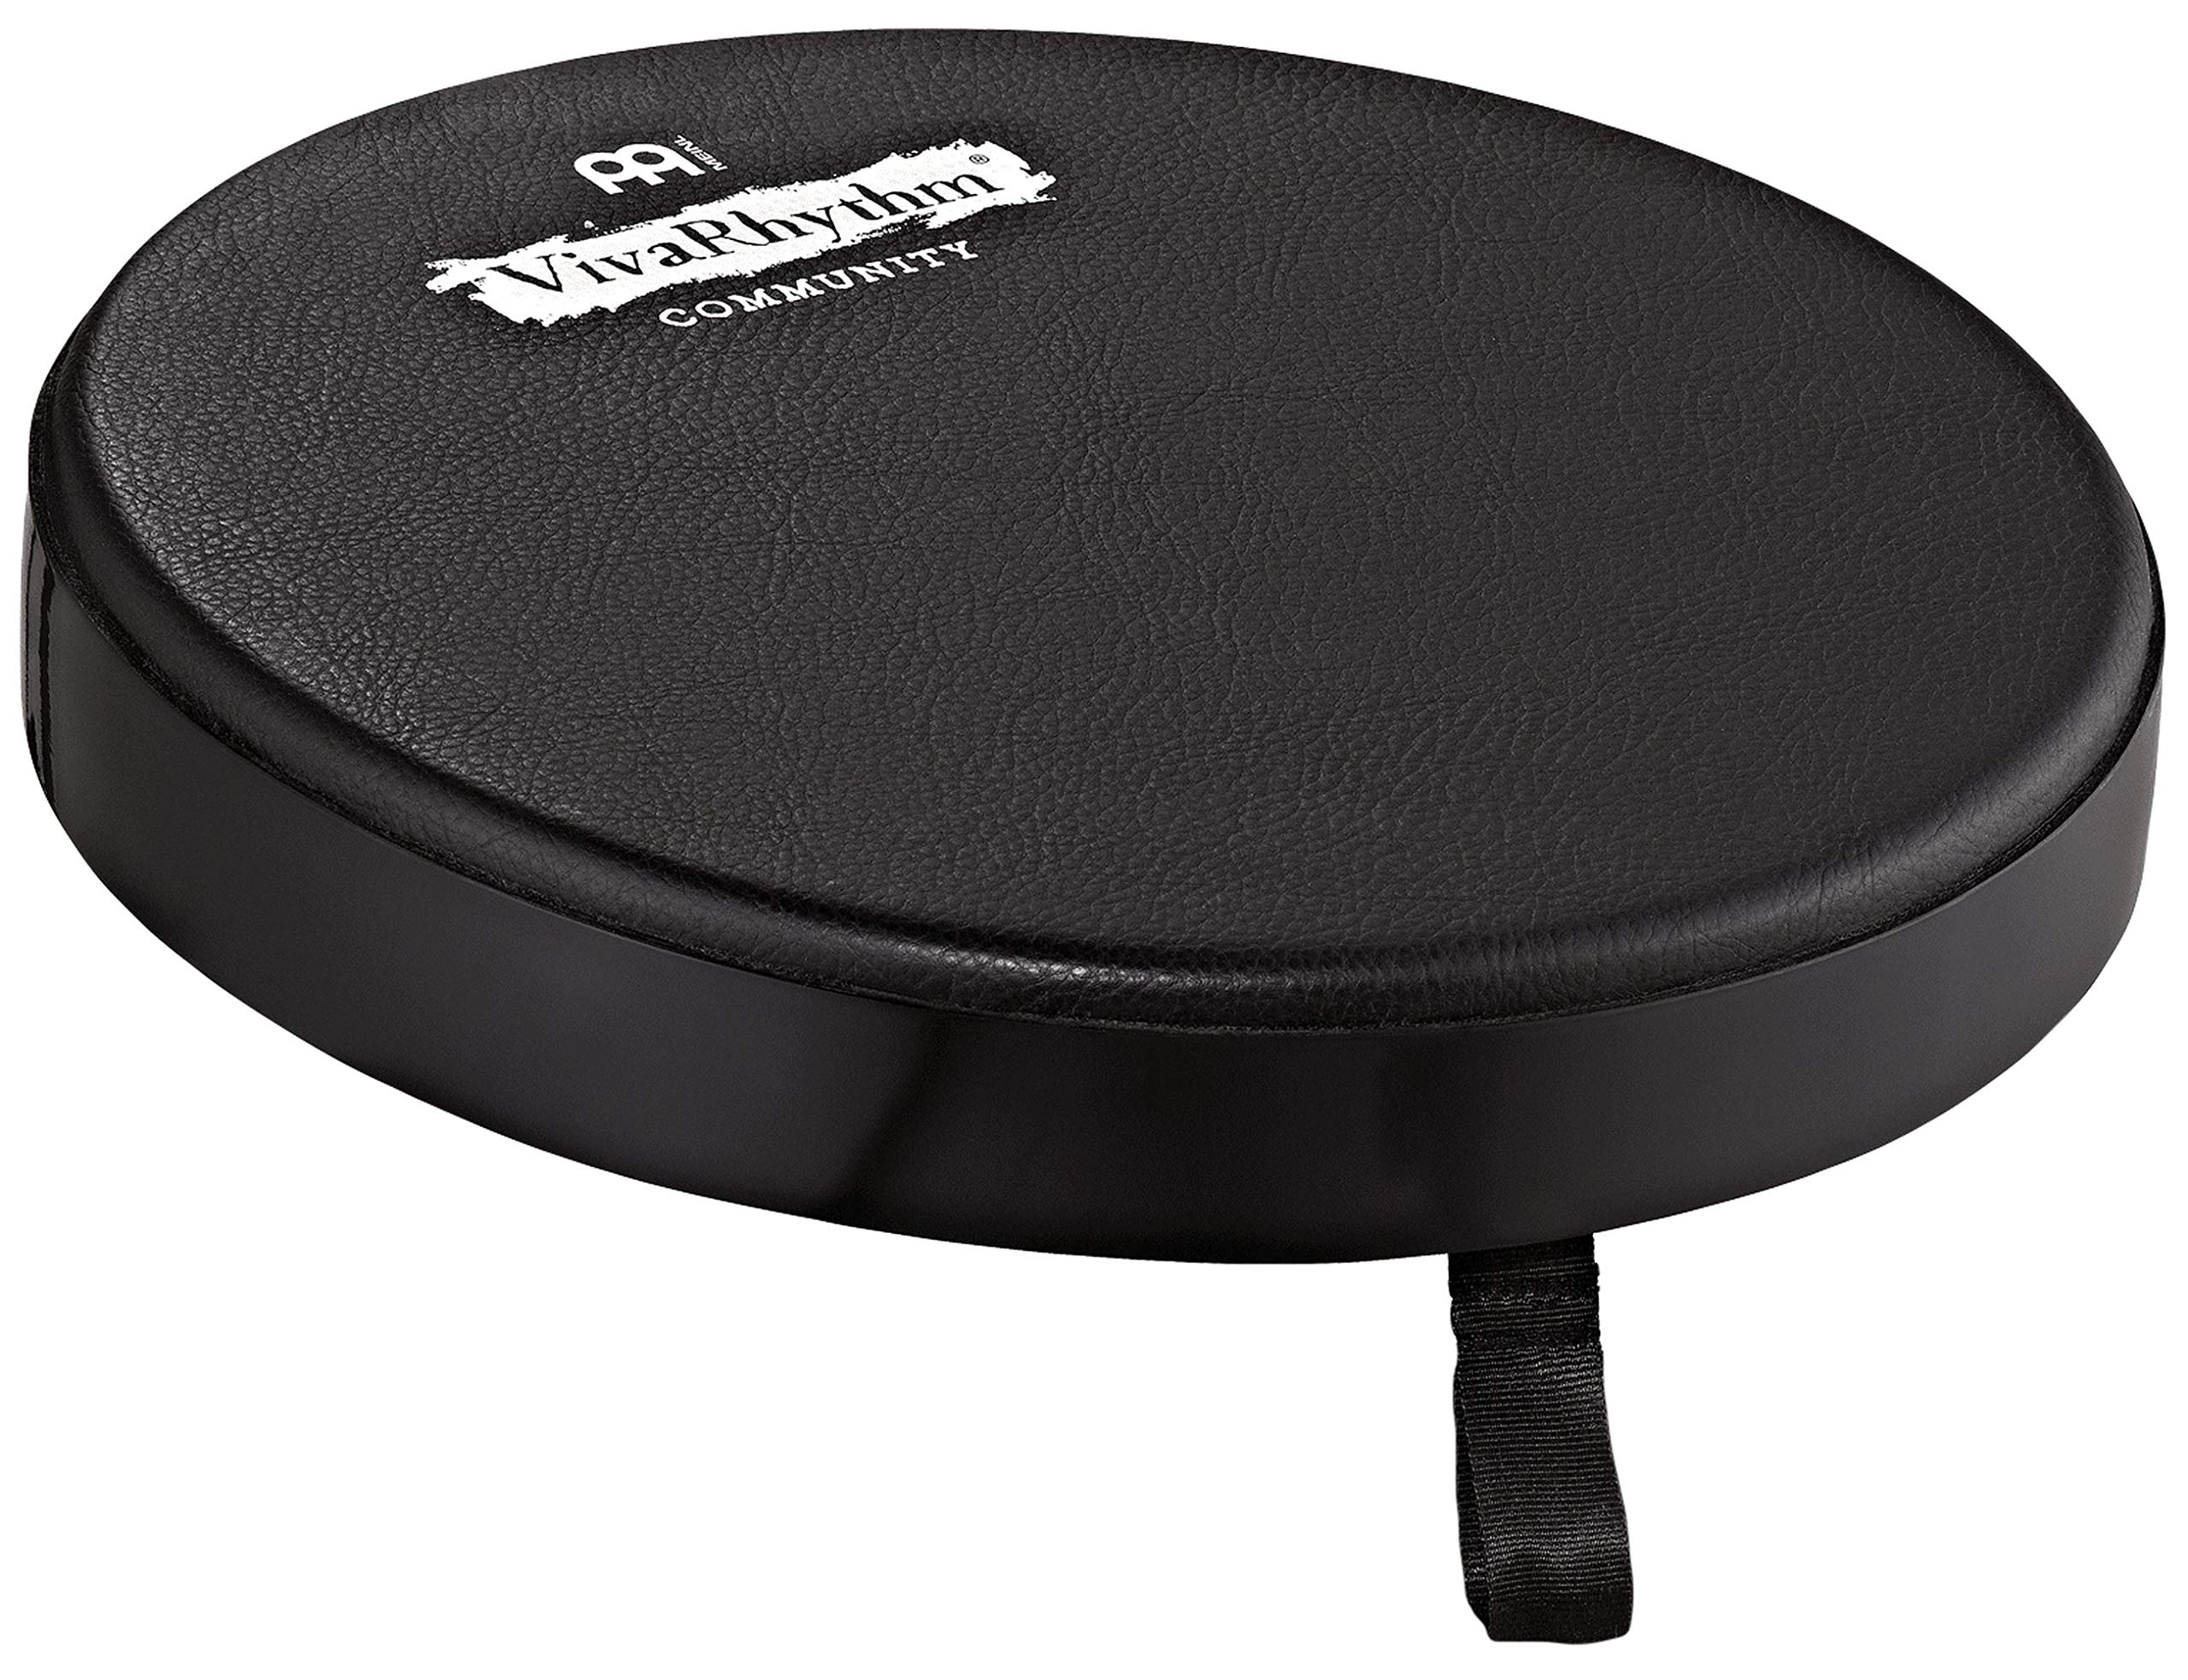 Meinl VivaRhythm 12'' Removable Pop Off Napa Head for Viva Rhythm Bass Drums - NOT MADE IN CHINA - Pretuned, Perfect for Outdoor Use (VR-POHBD12-NH) by Meinl VivaRhythm